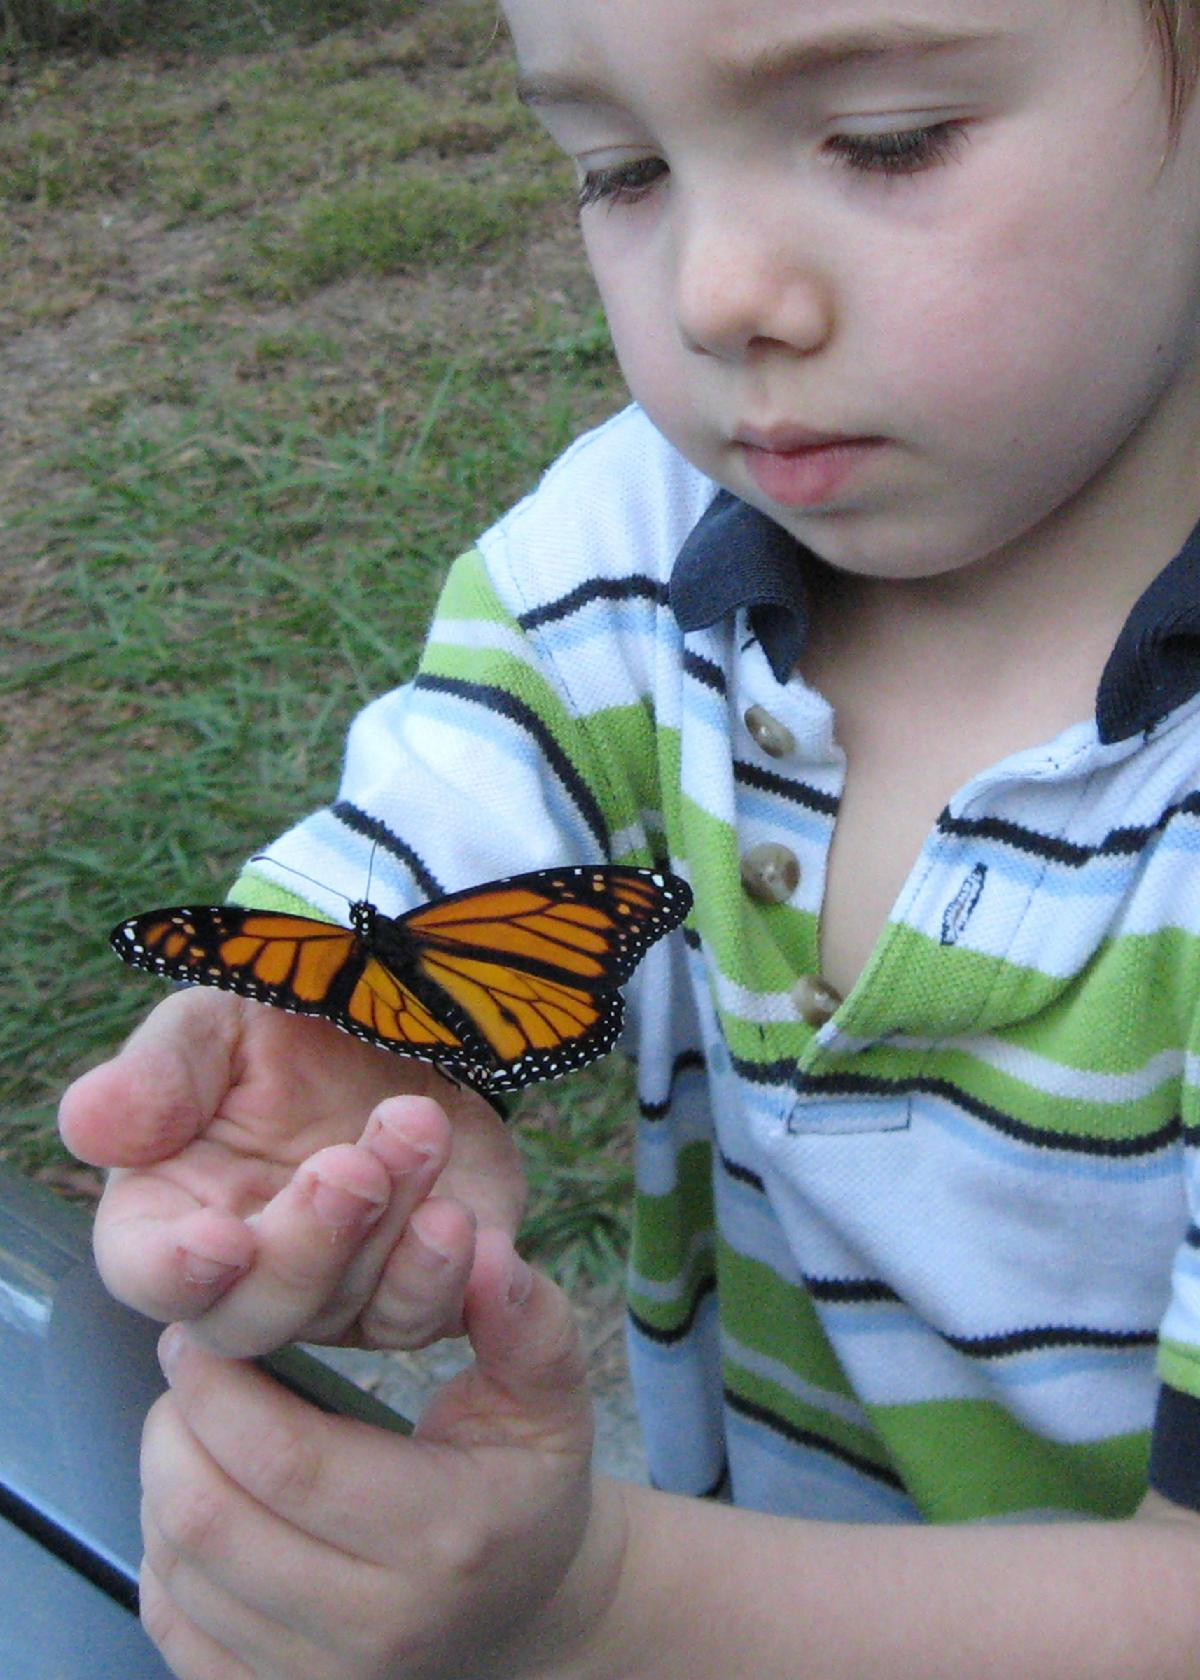 a monarch butterfly rests on the wrist of a young child